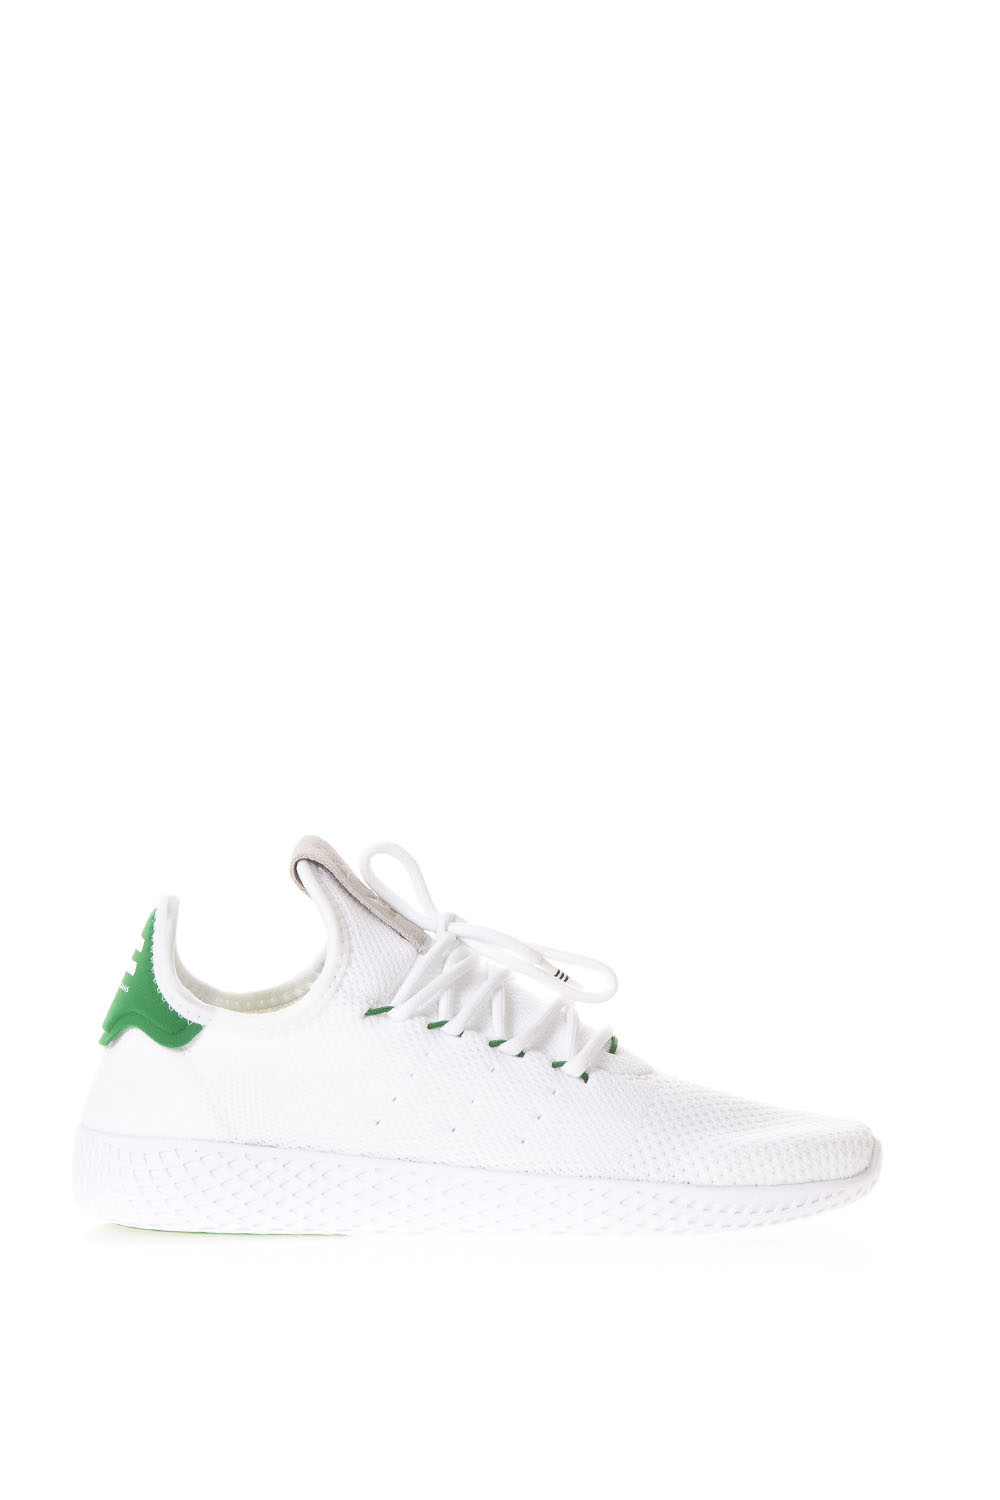 6613ffbe84441 TENNIS HU PRIMEKNIT SHOES SS 2017 - ADIDAS   PHARRELL WILLIAMS - Boutique  Galiano